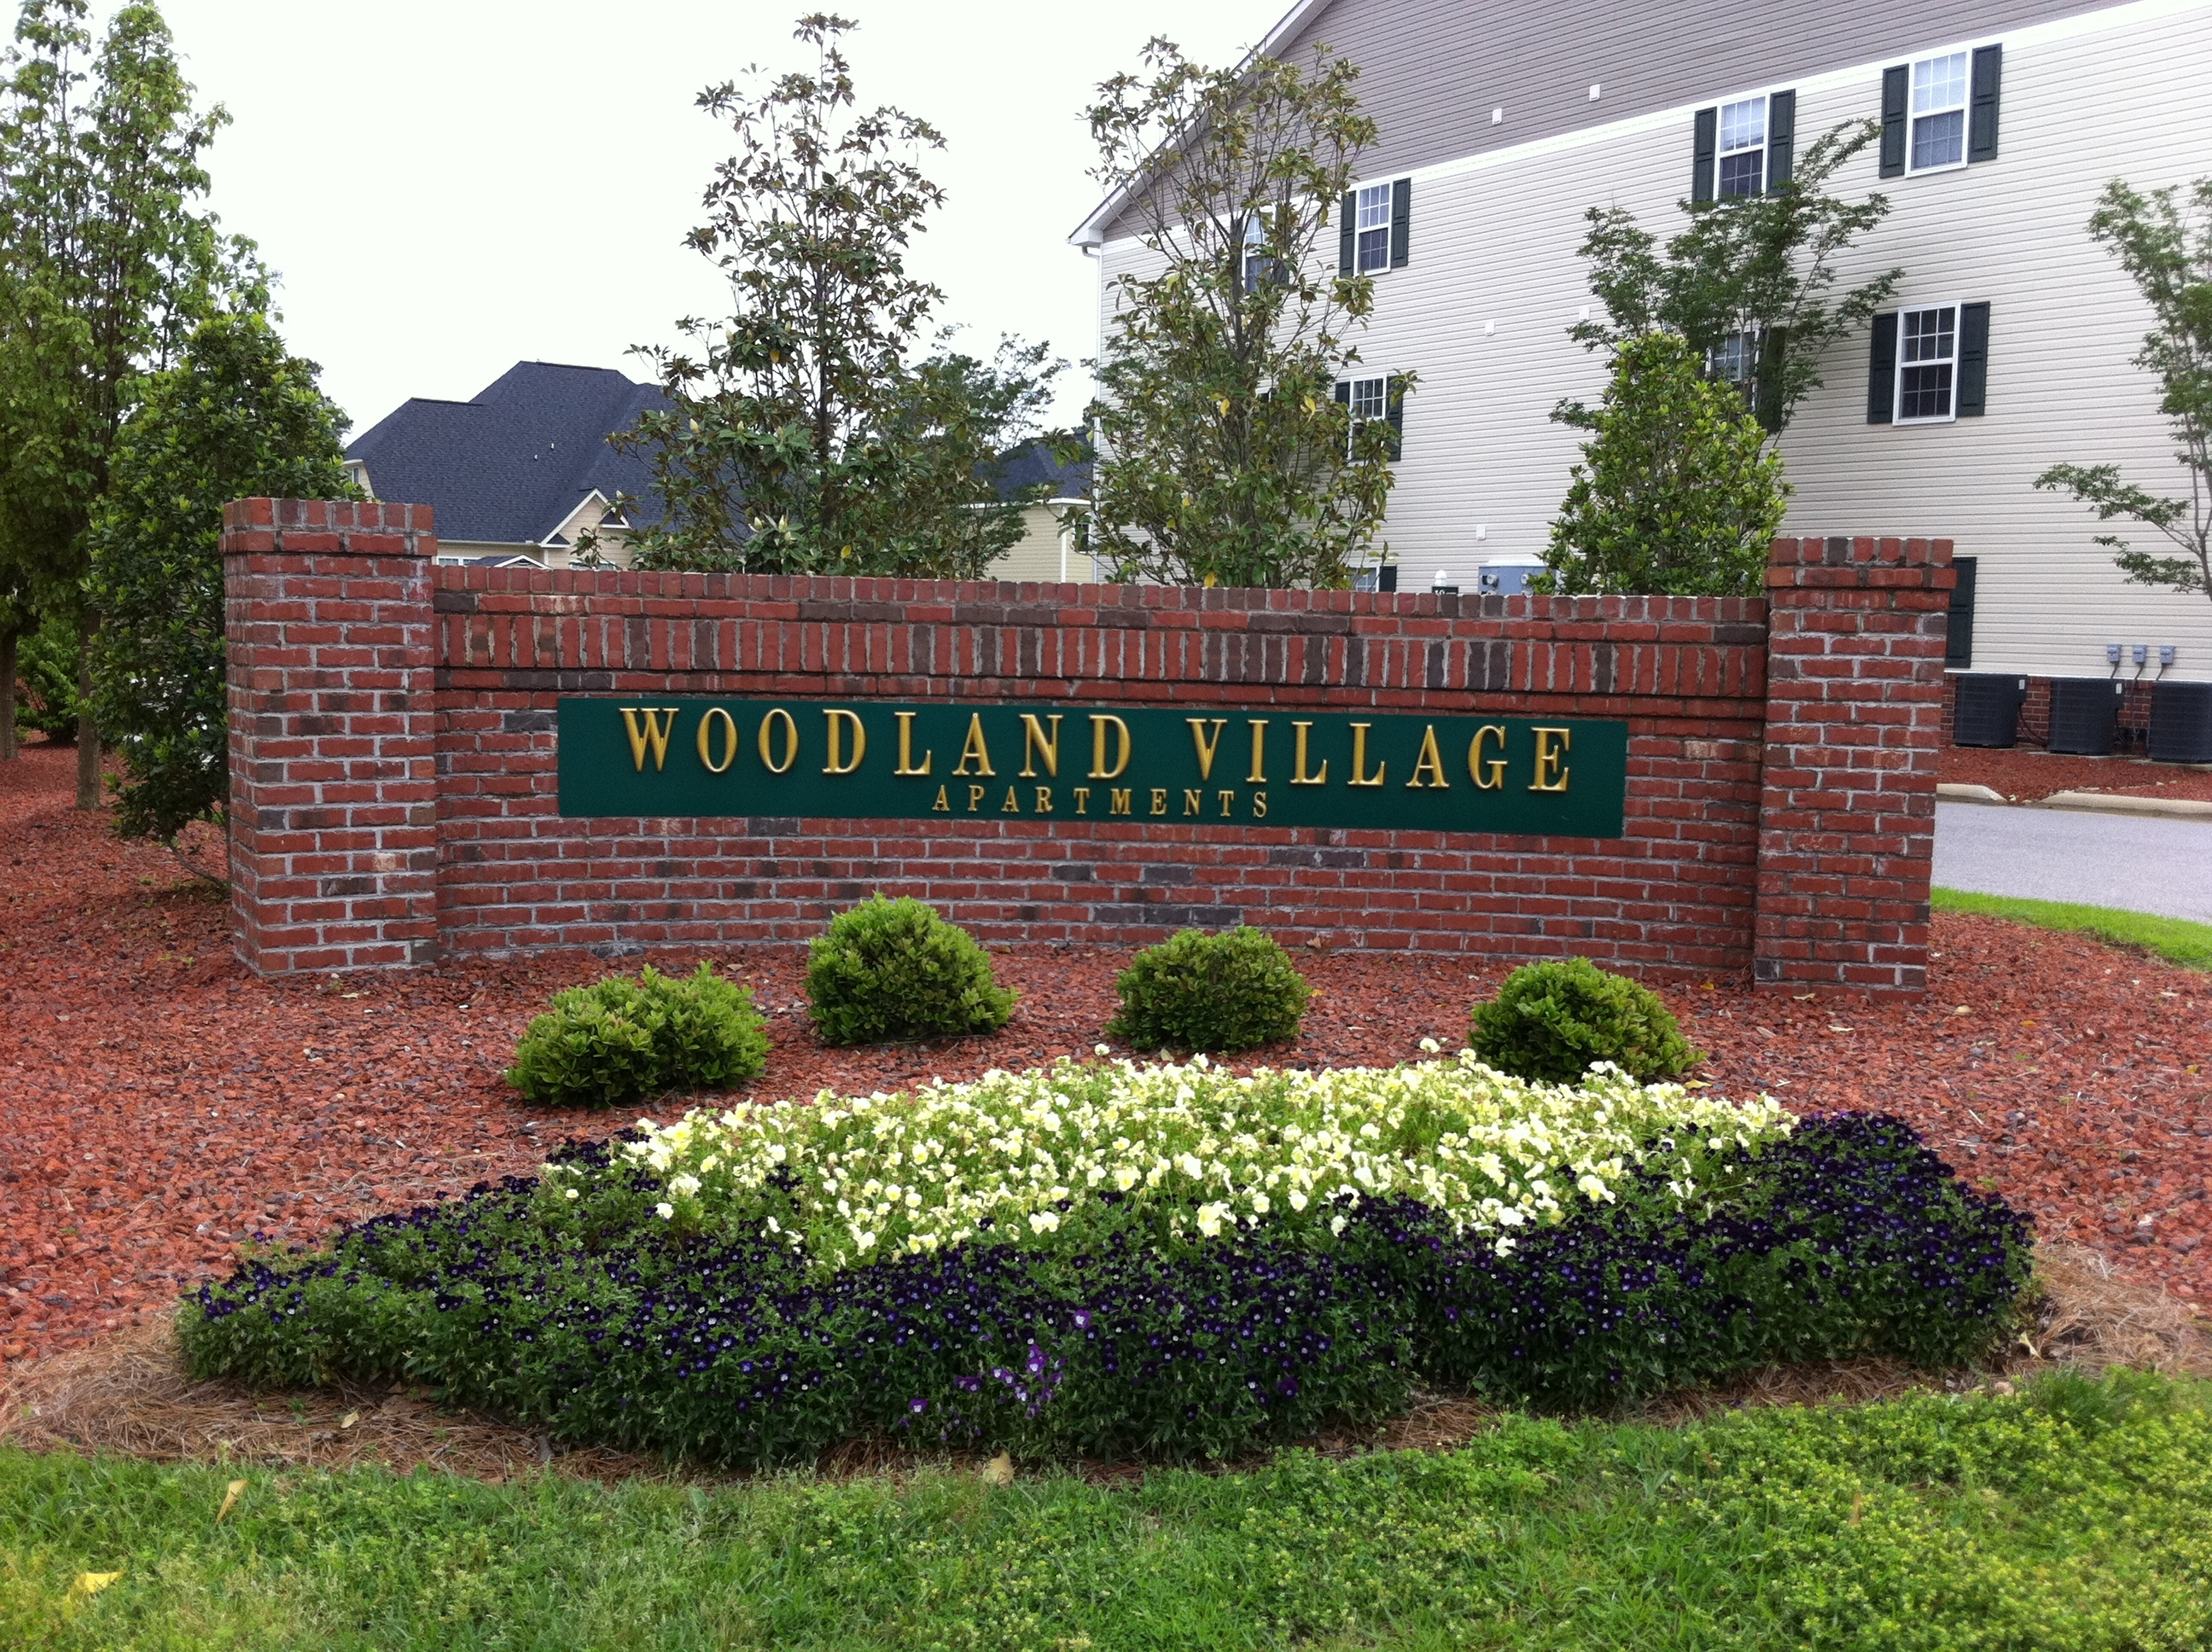 Woodland Village Apartments Fayetteville Nc